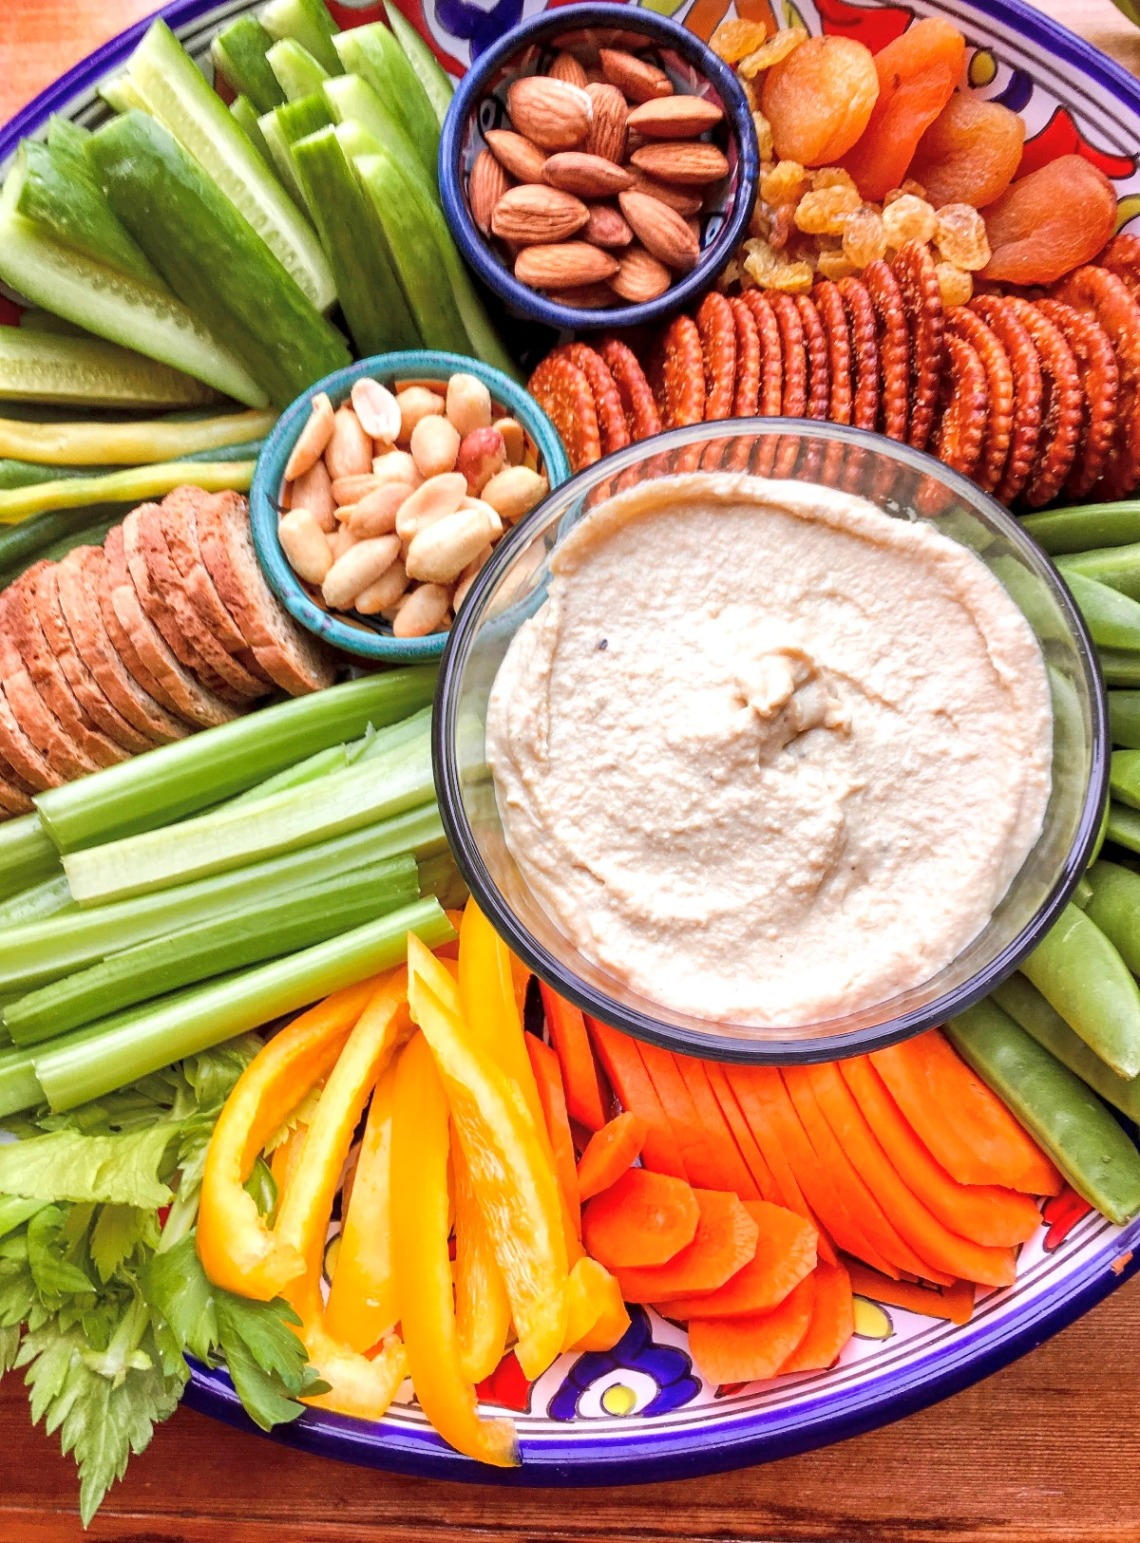 snack platter with veggies, crackers and hummus